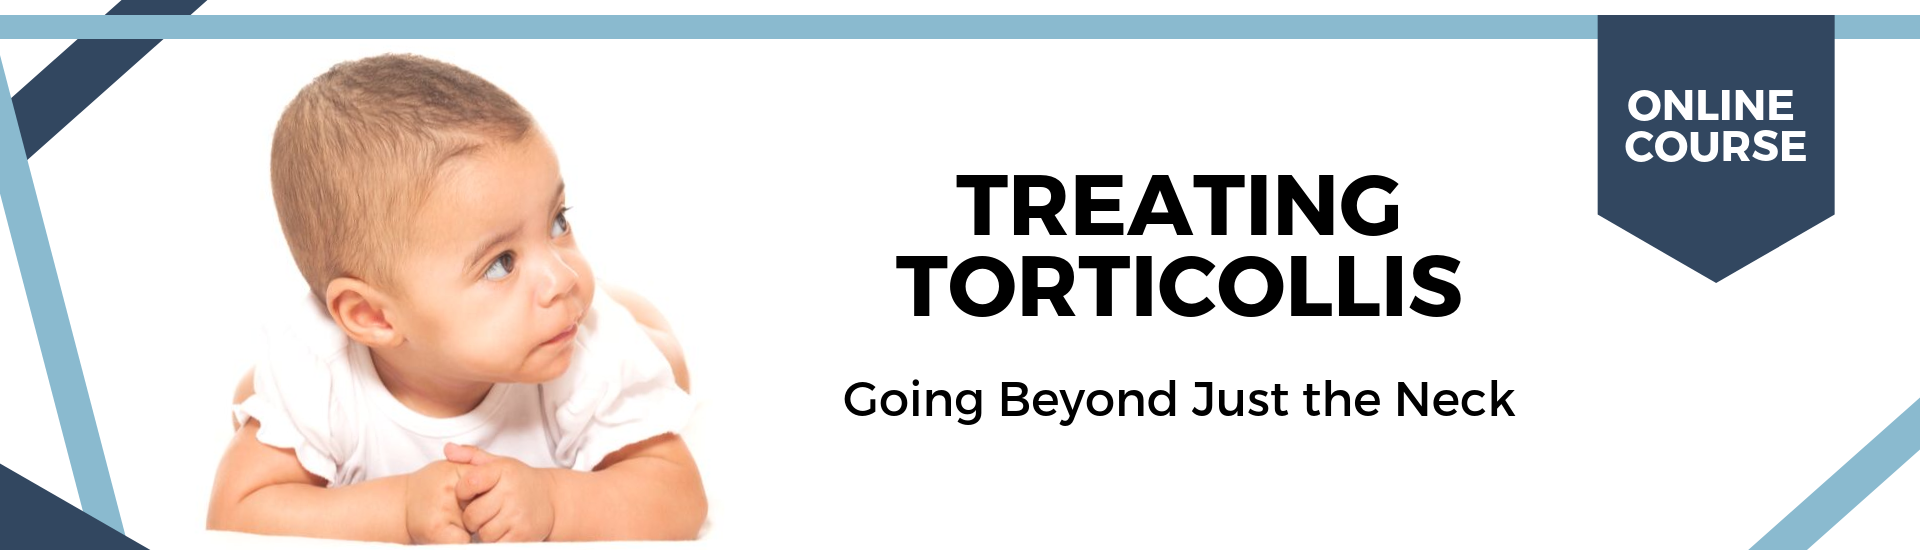 Treating Torticollis: Going Beyond Just the Neck